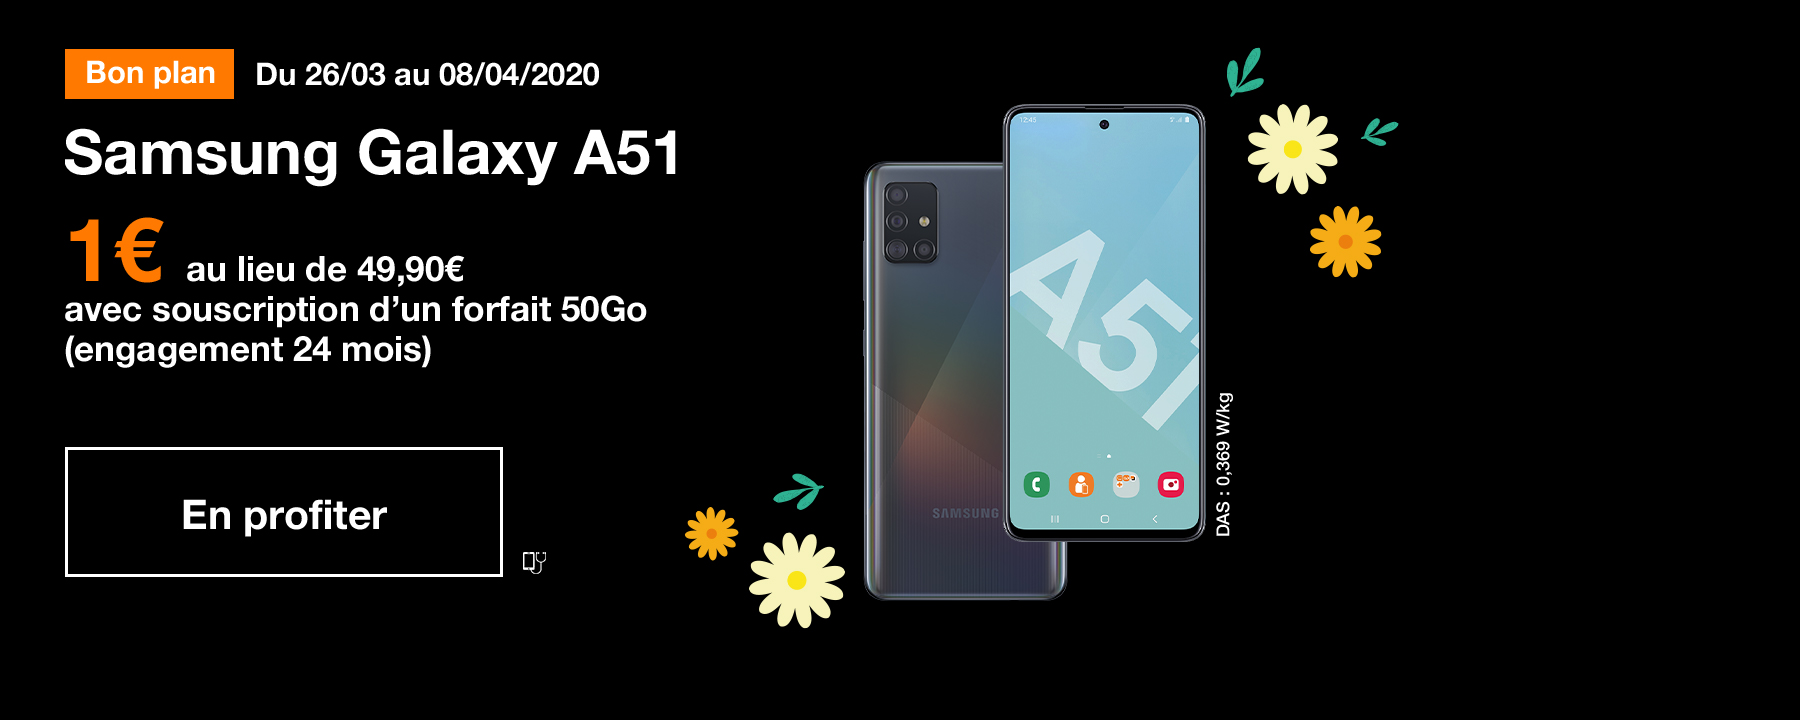 Bon plan Samsung Galaxy A51